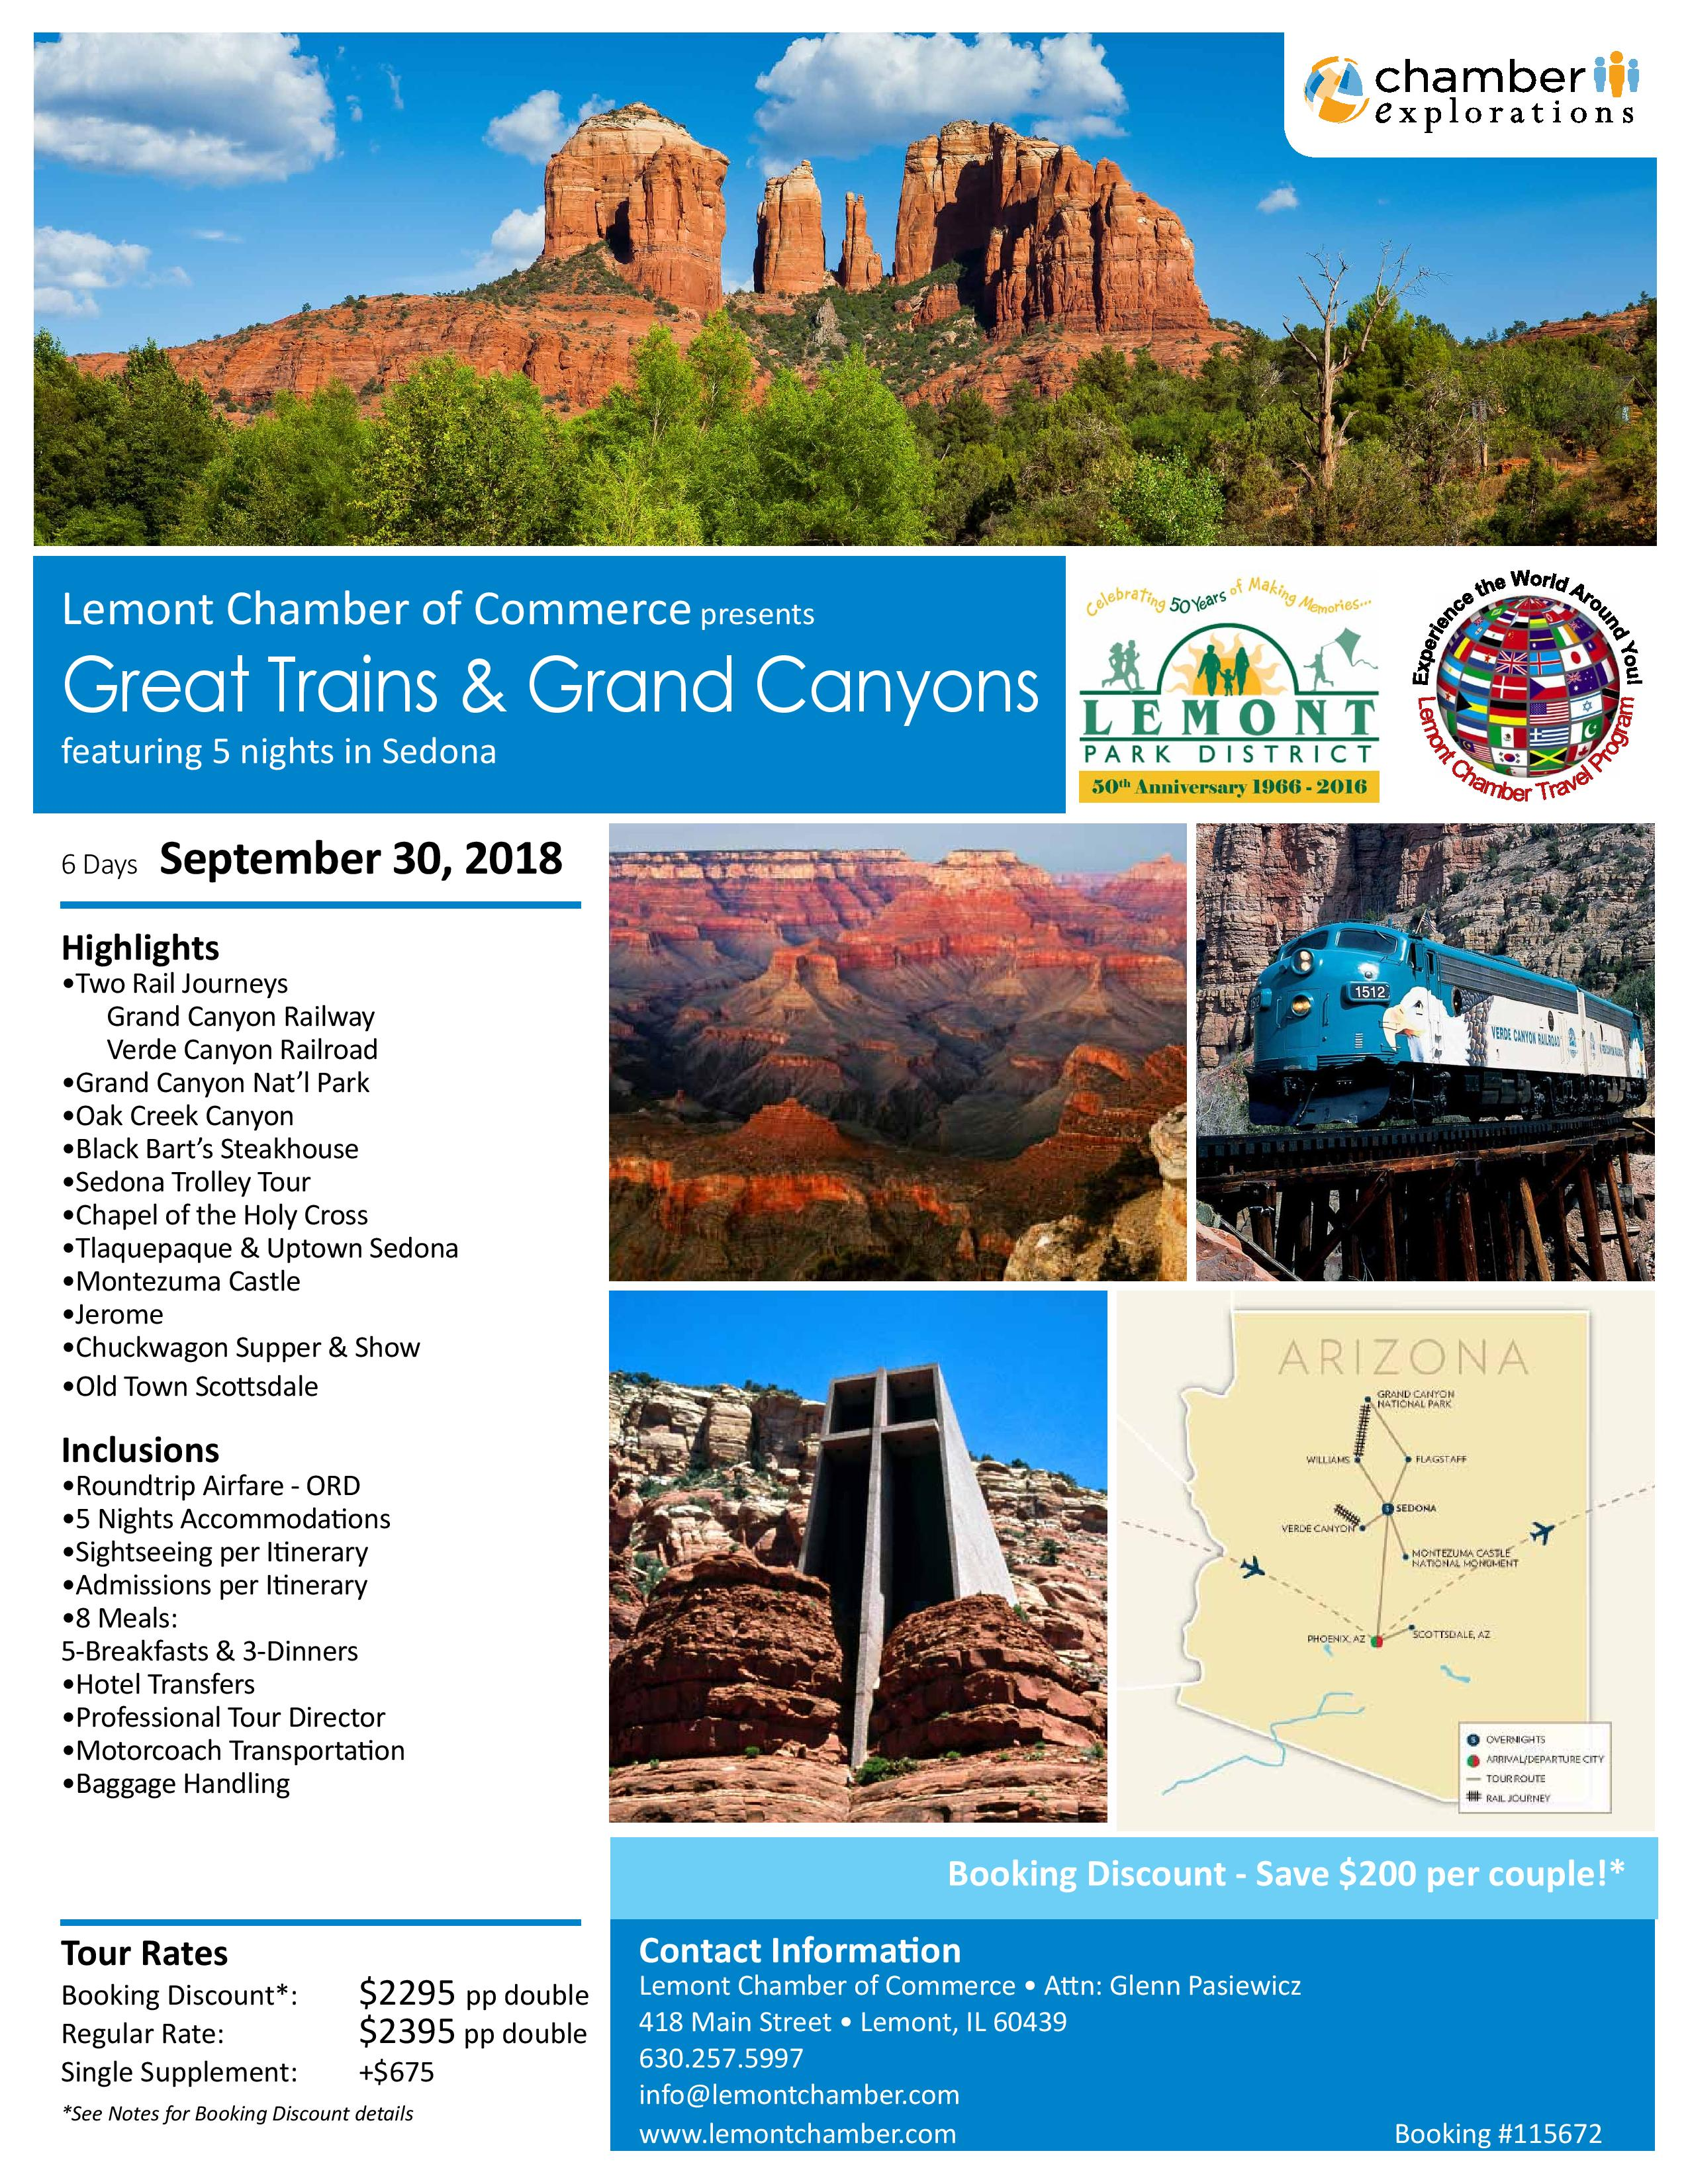 GREAT-TRAINS-and-GRAND-CANYONS---Lemont-CofC---30SEP18-page-001-w1275.jpg